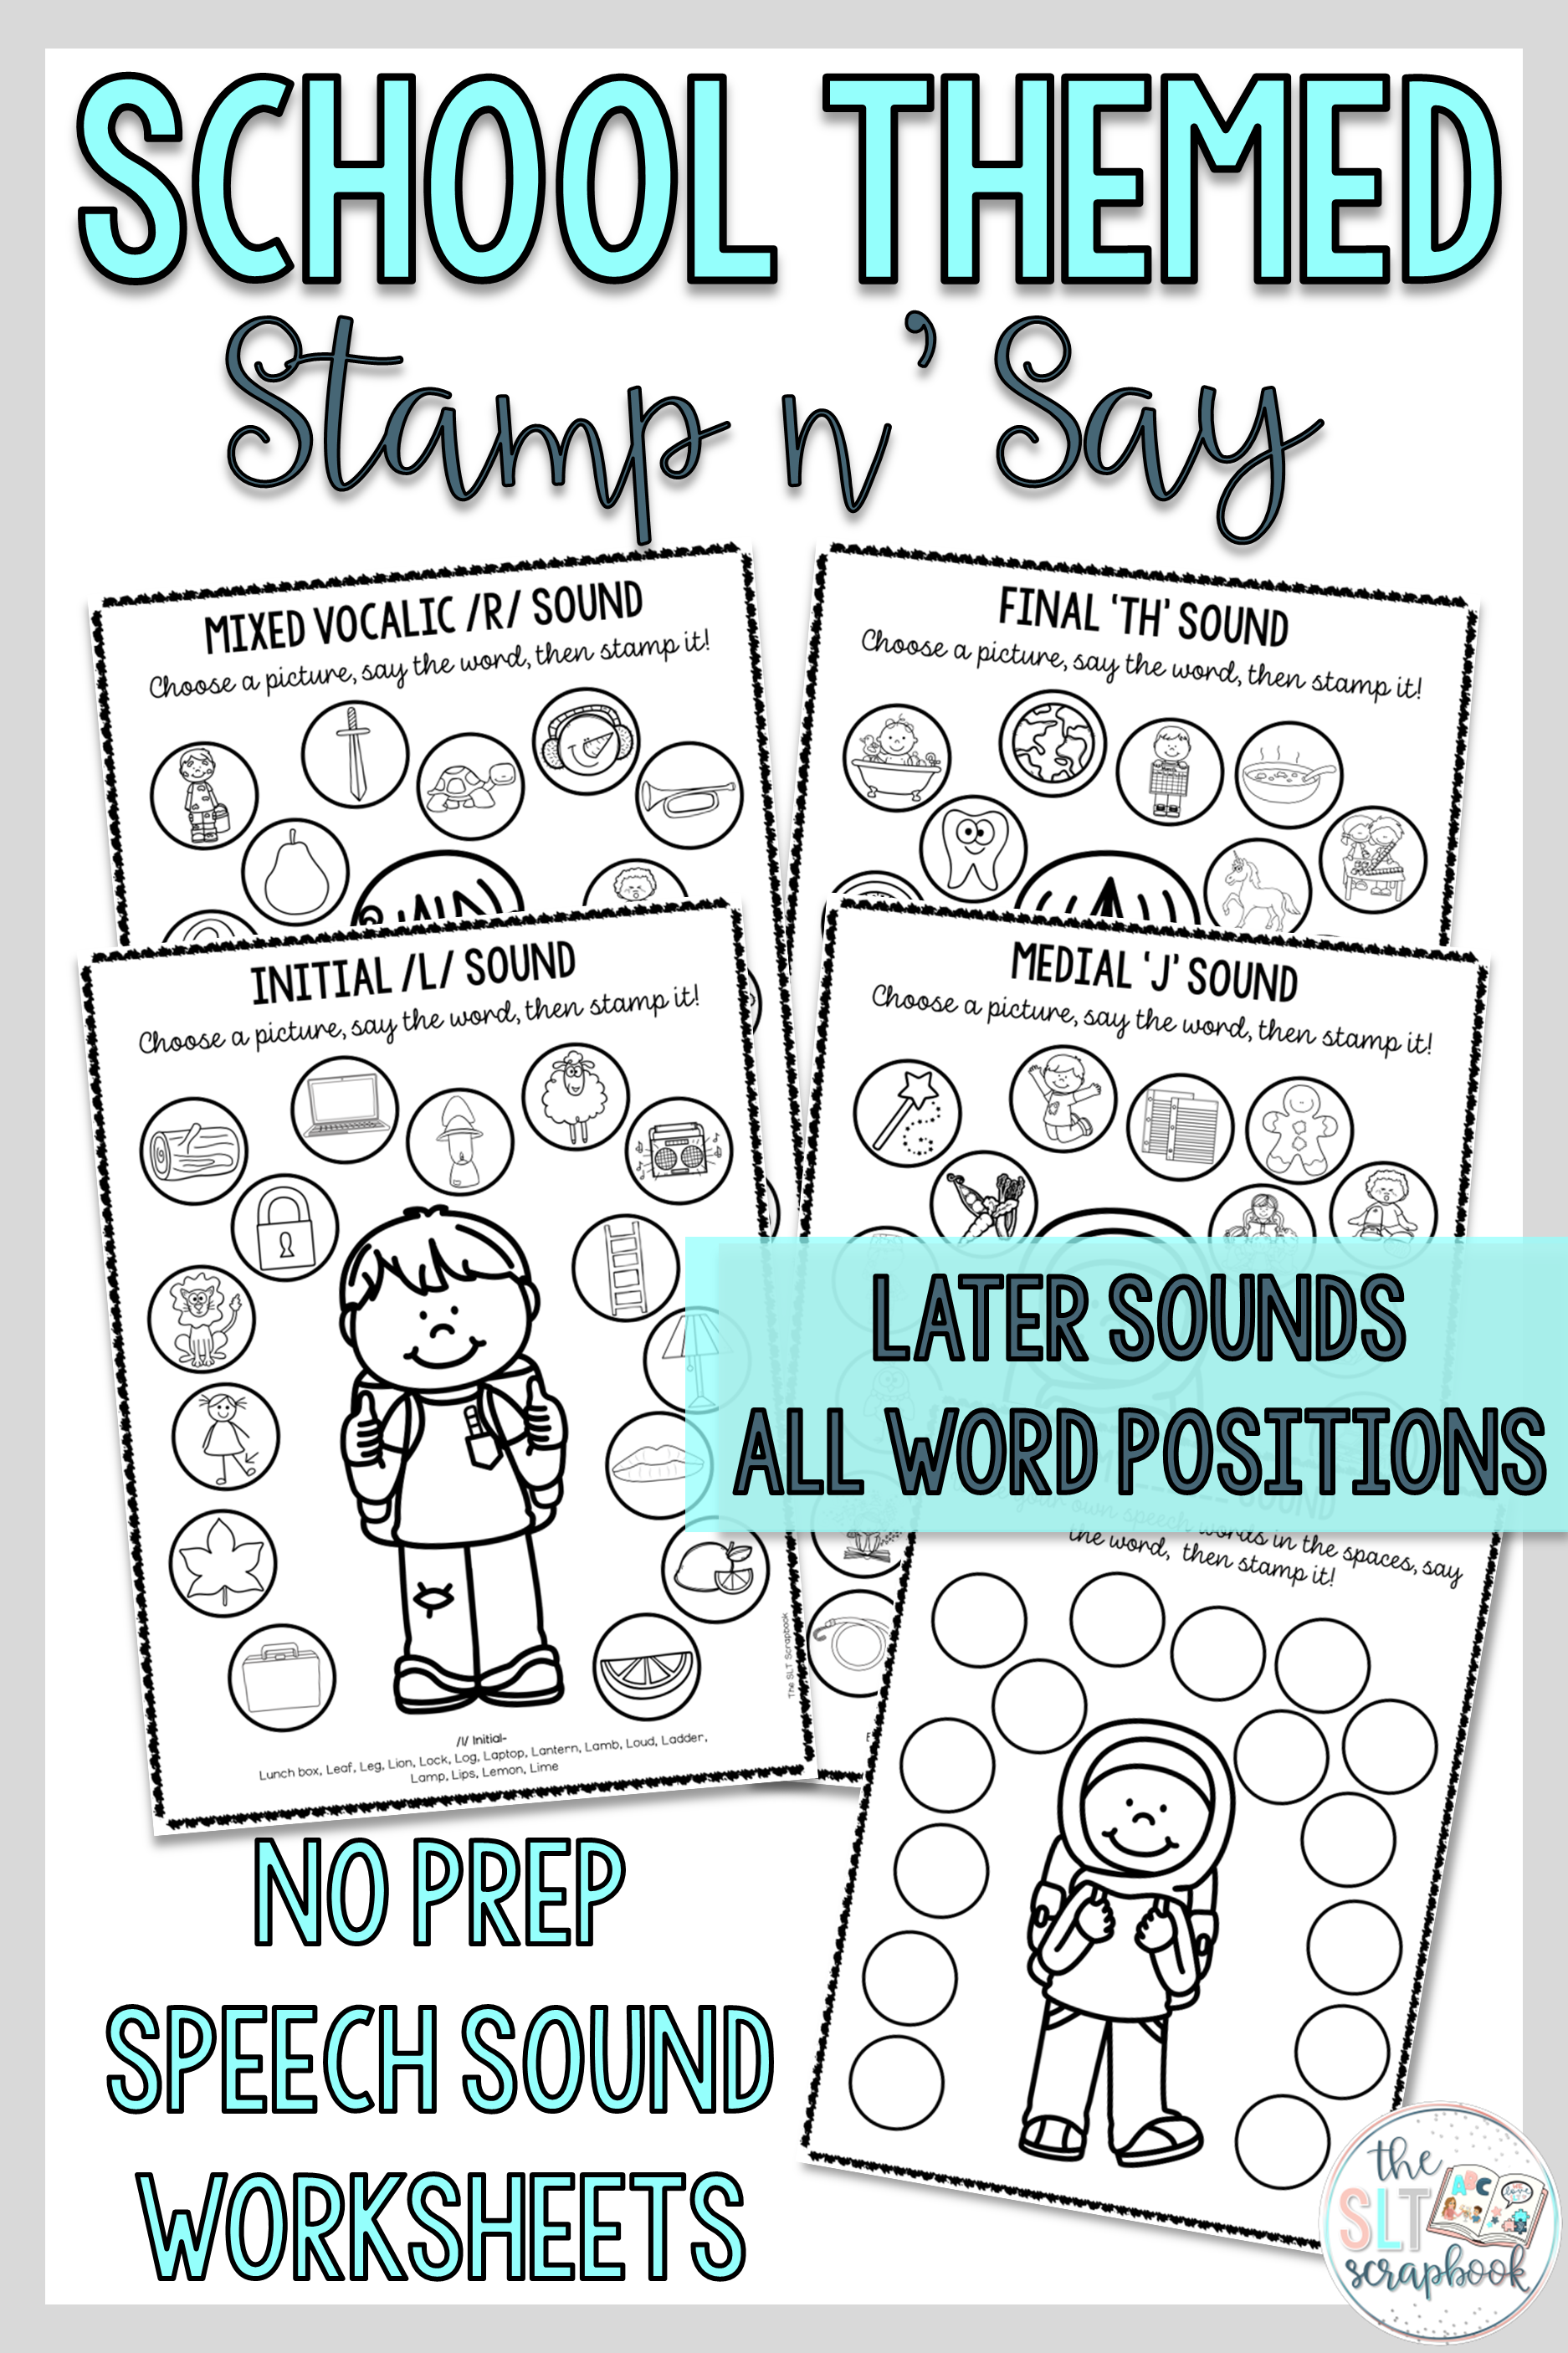 School Themed Speech Sound Worksheets Later Sounds With